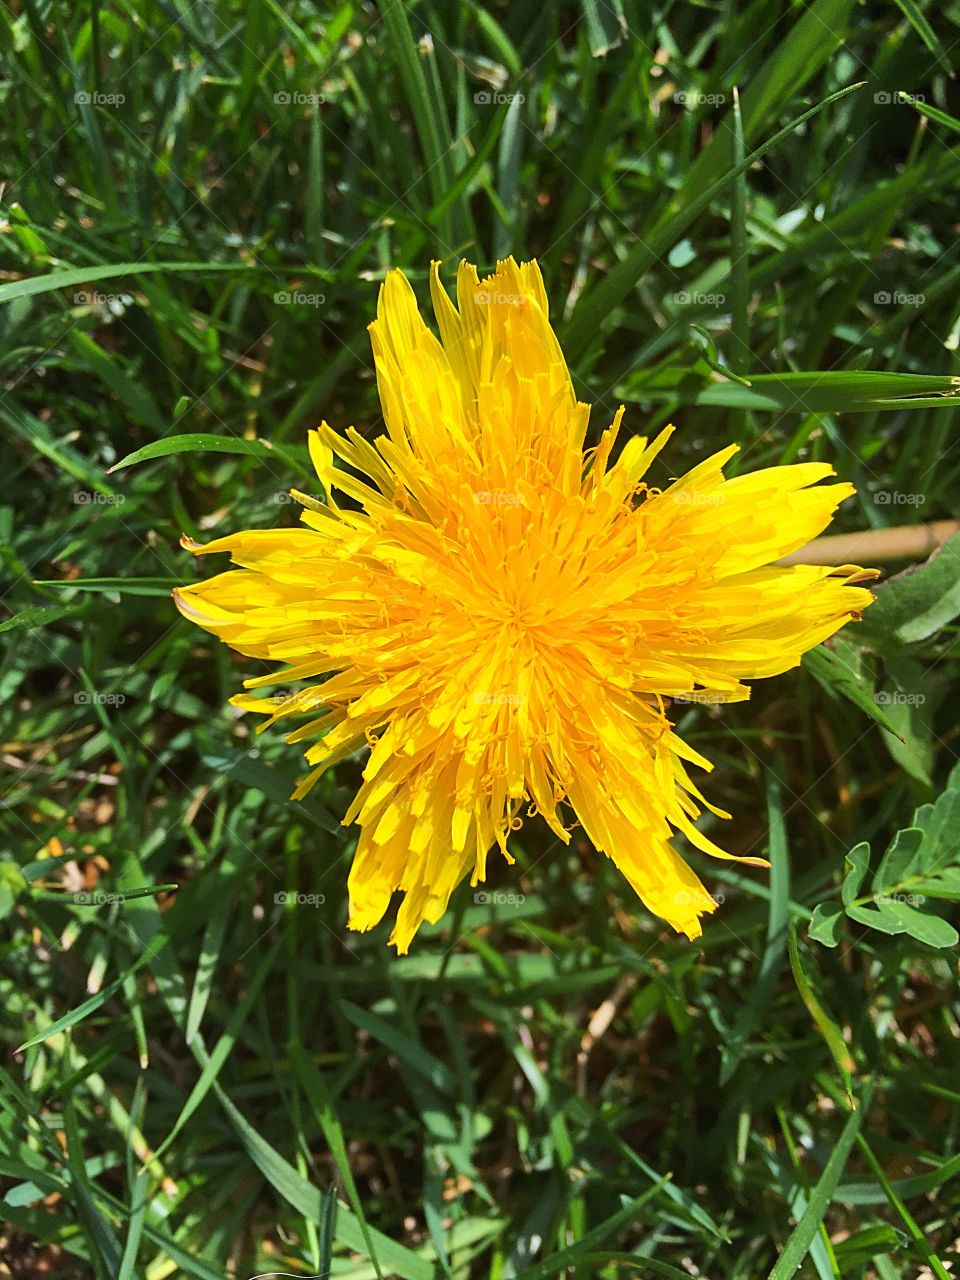 A beautiful, star shaped, dandelion. Some see a weed, I see a thing of beauty!